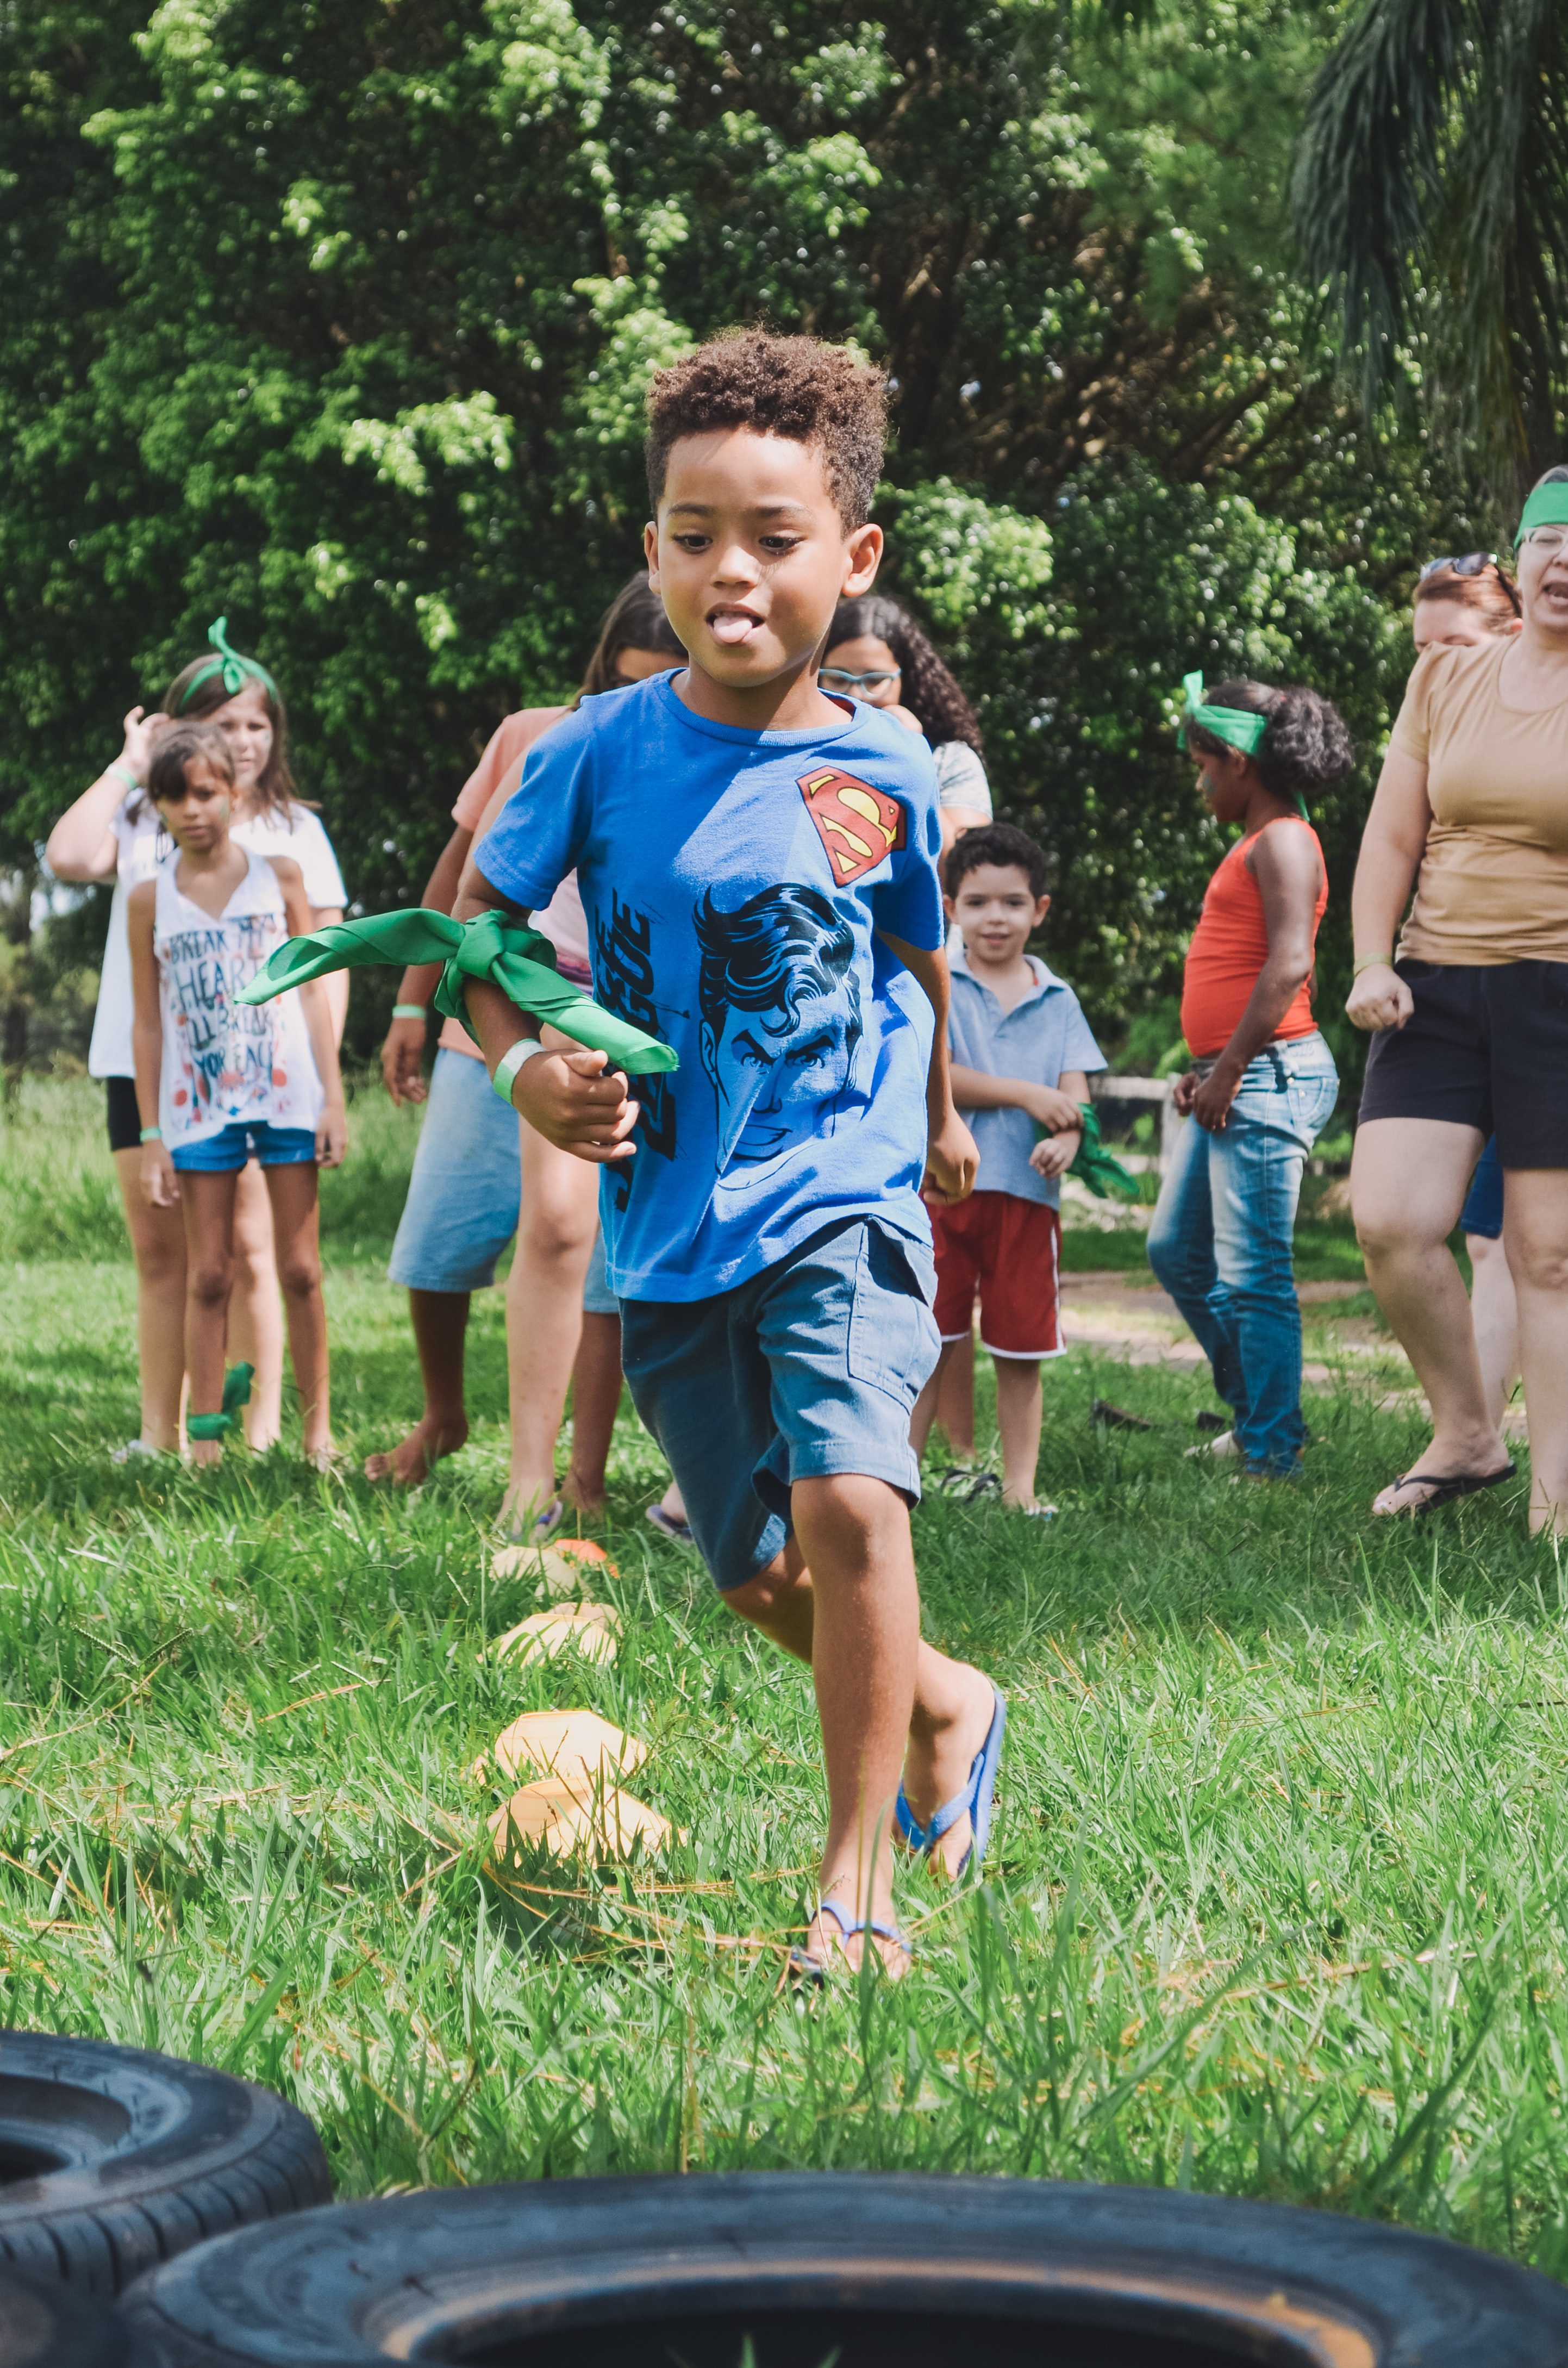 10 Backyard Games for Kids and Adults